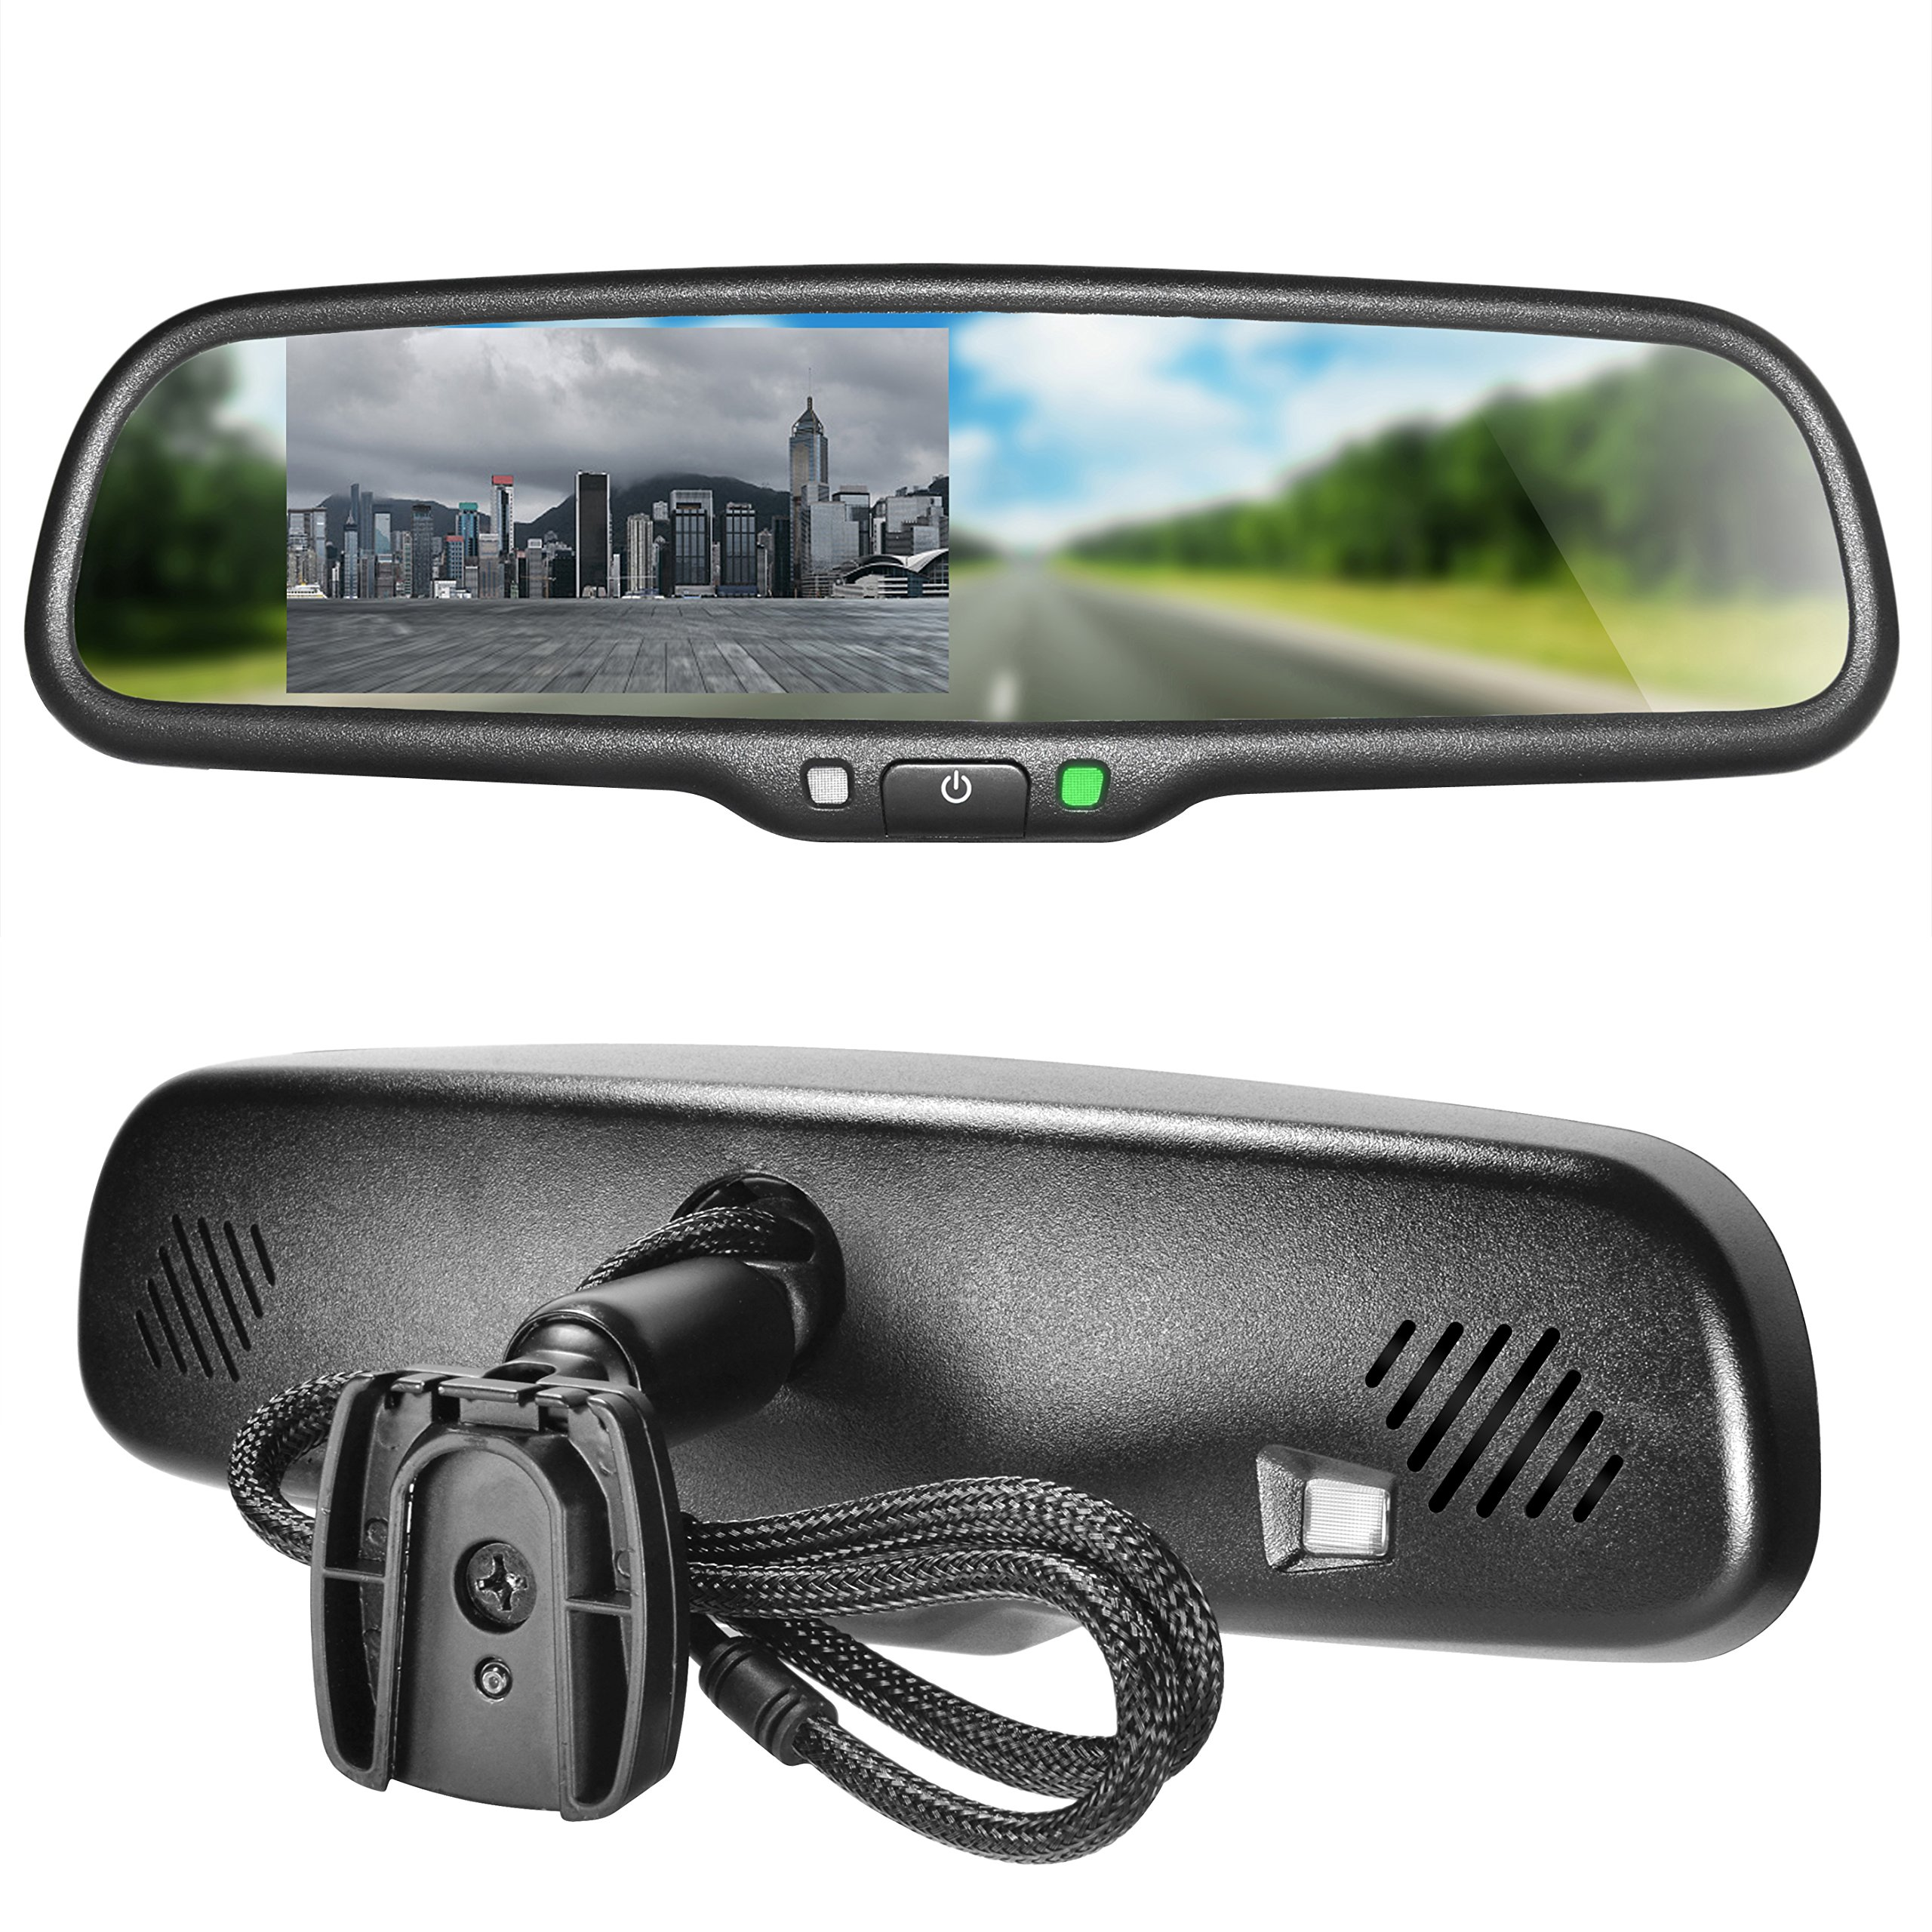 Master Tailgaters OEM Rear View Mirror with 4.3'' Auto Adjusting Brightness LCD - Rearview Universal Fit by Master Tailgaters